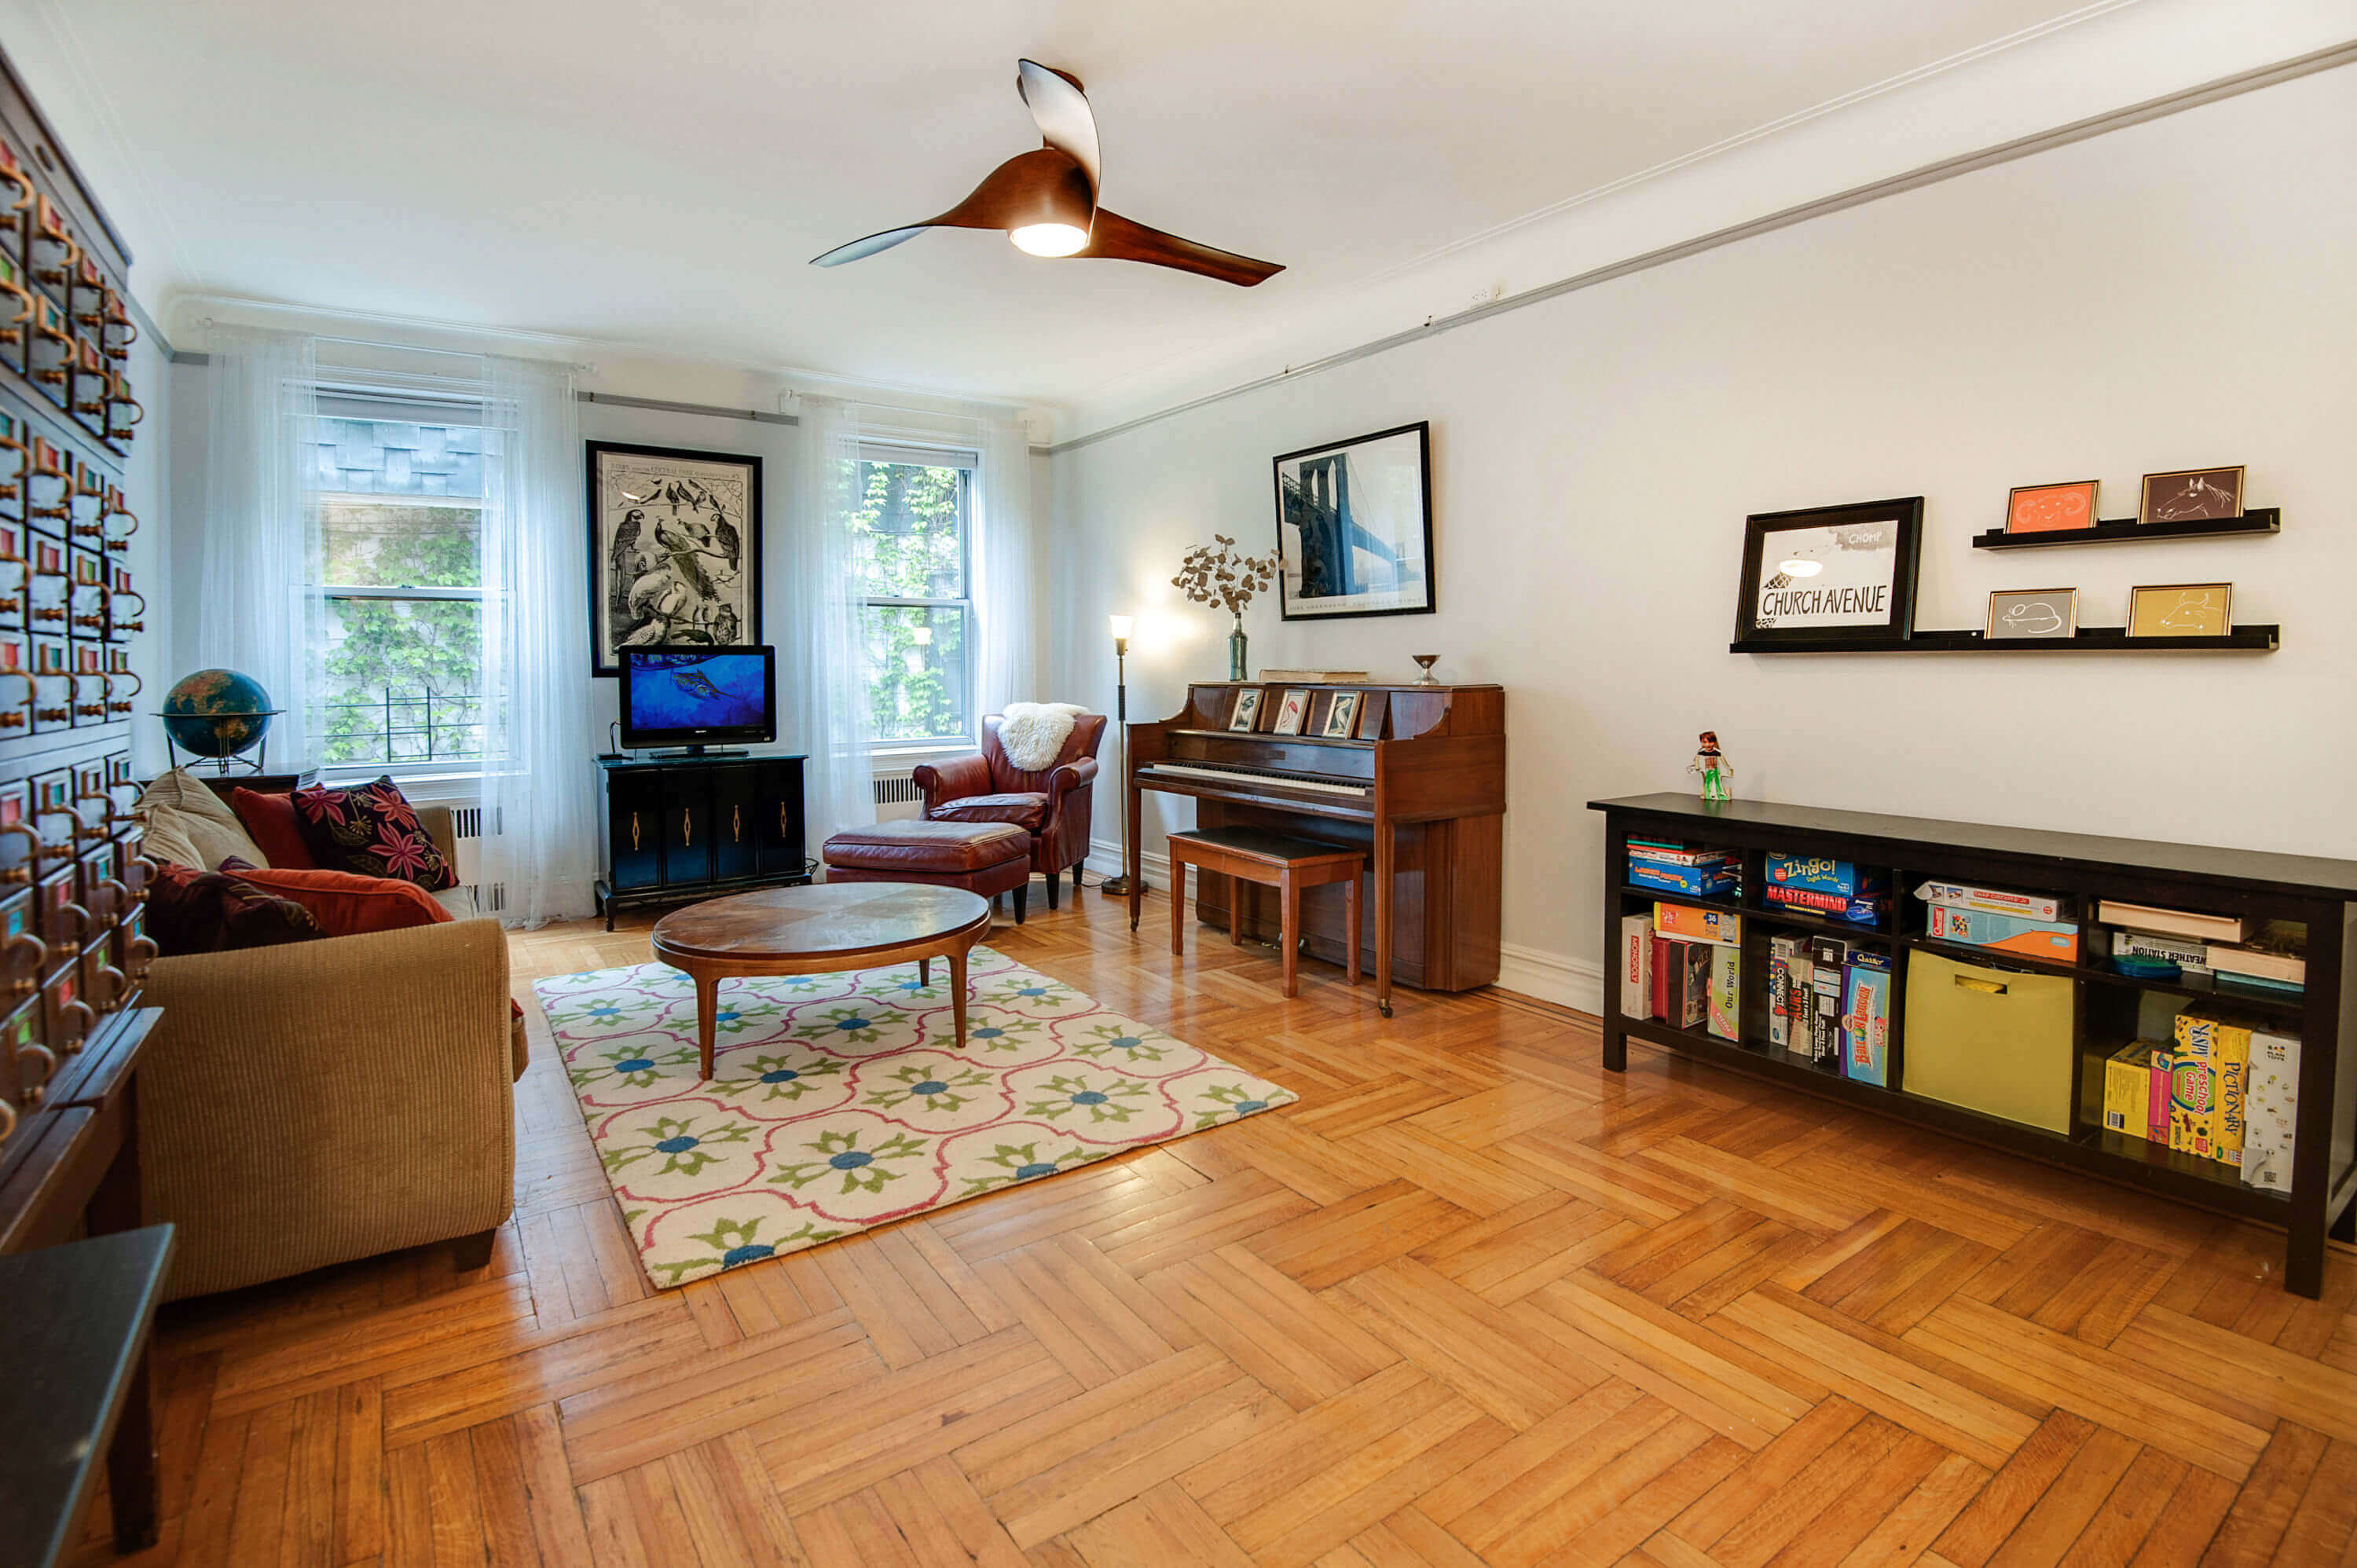 Brooklyn Homes for Sale: Jackie Robinson's House Still ...